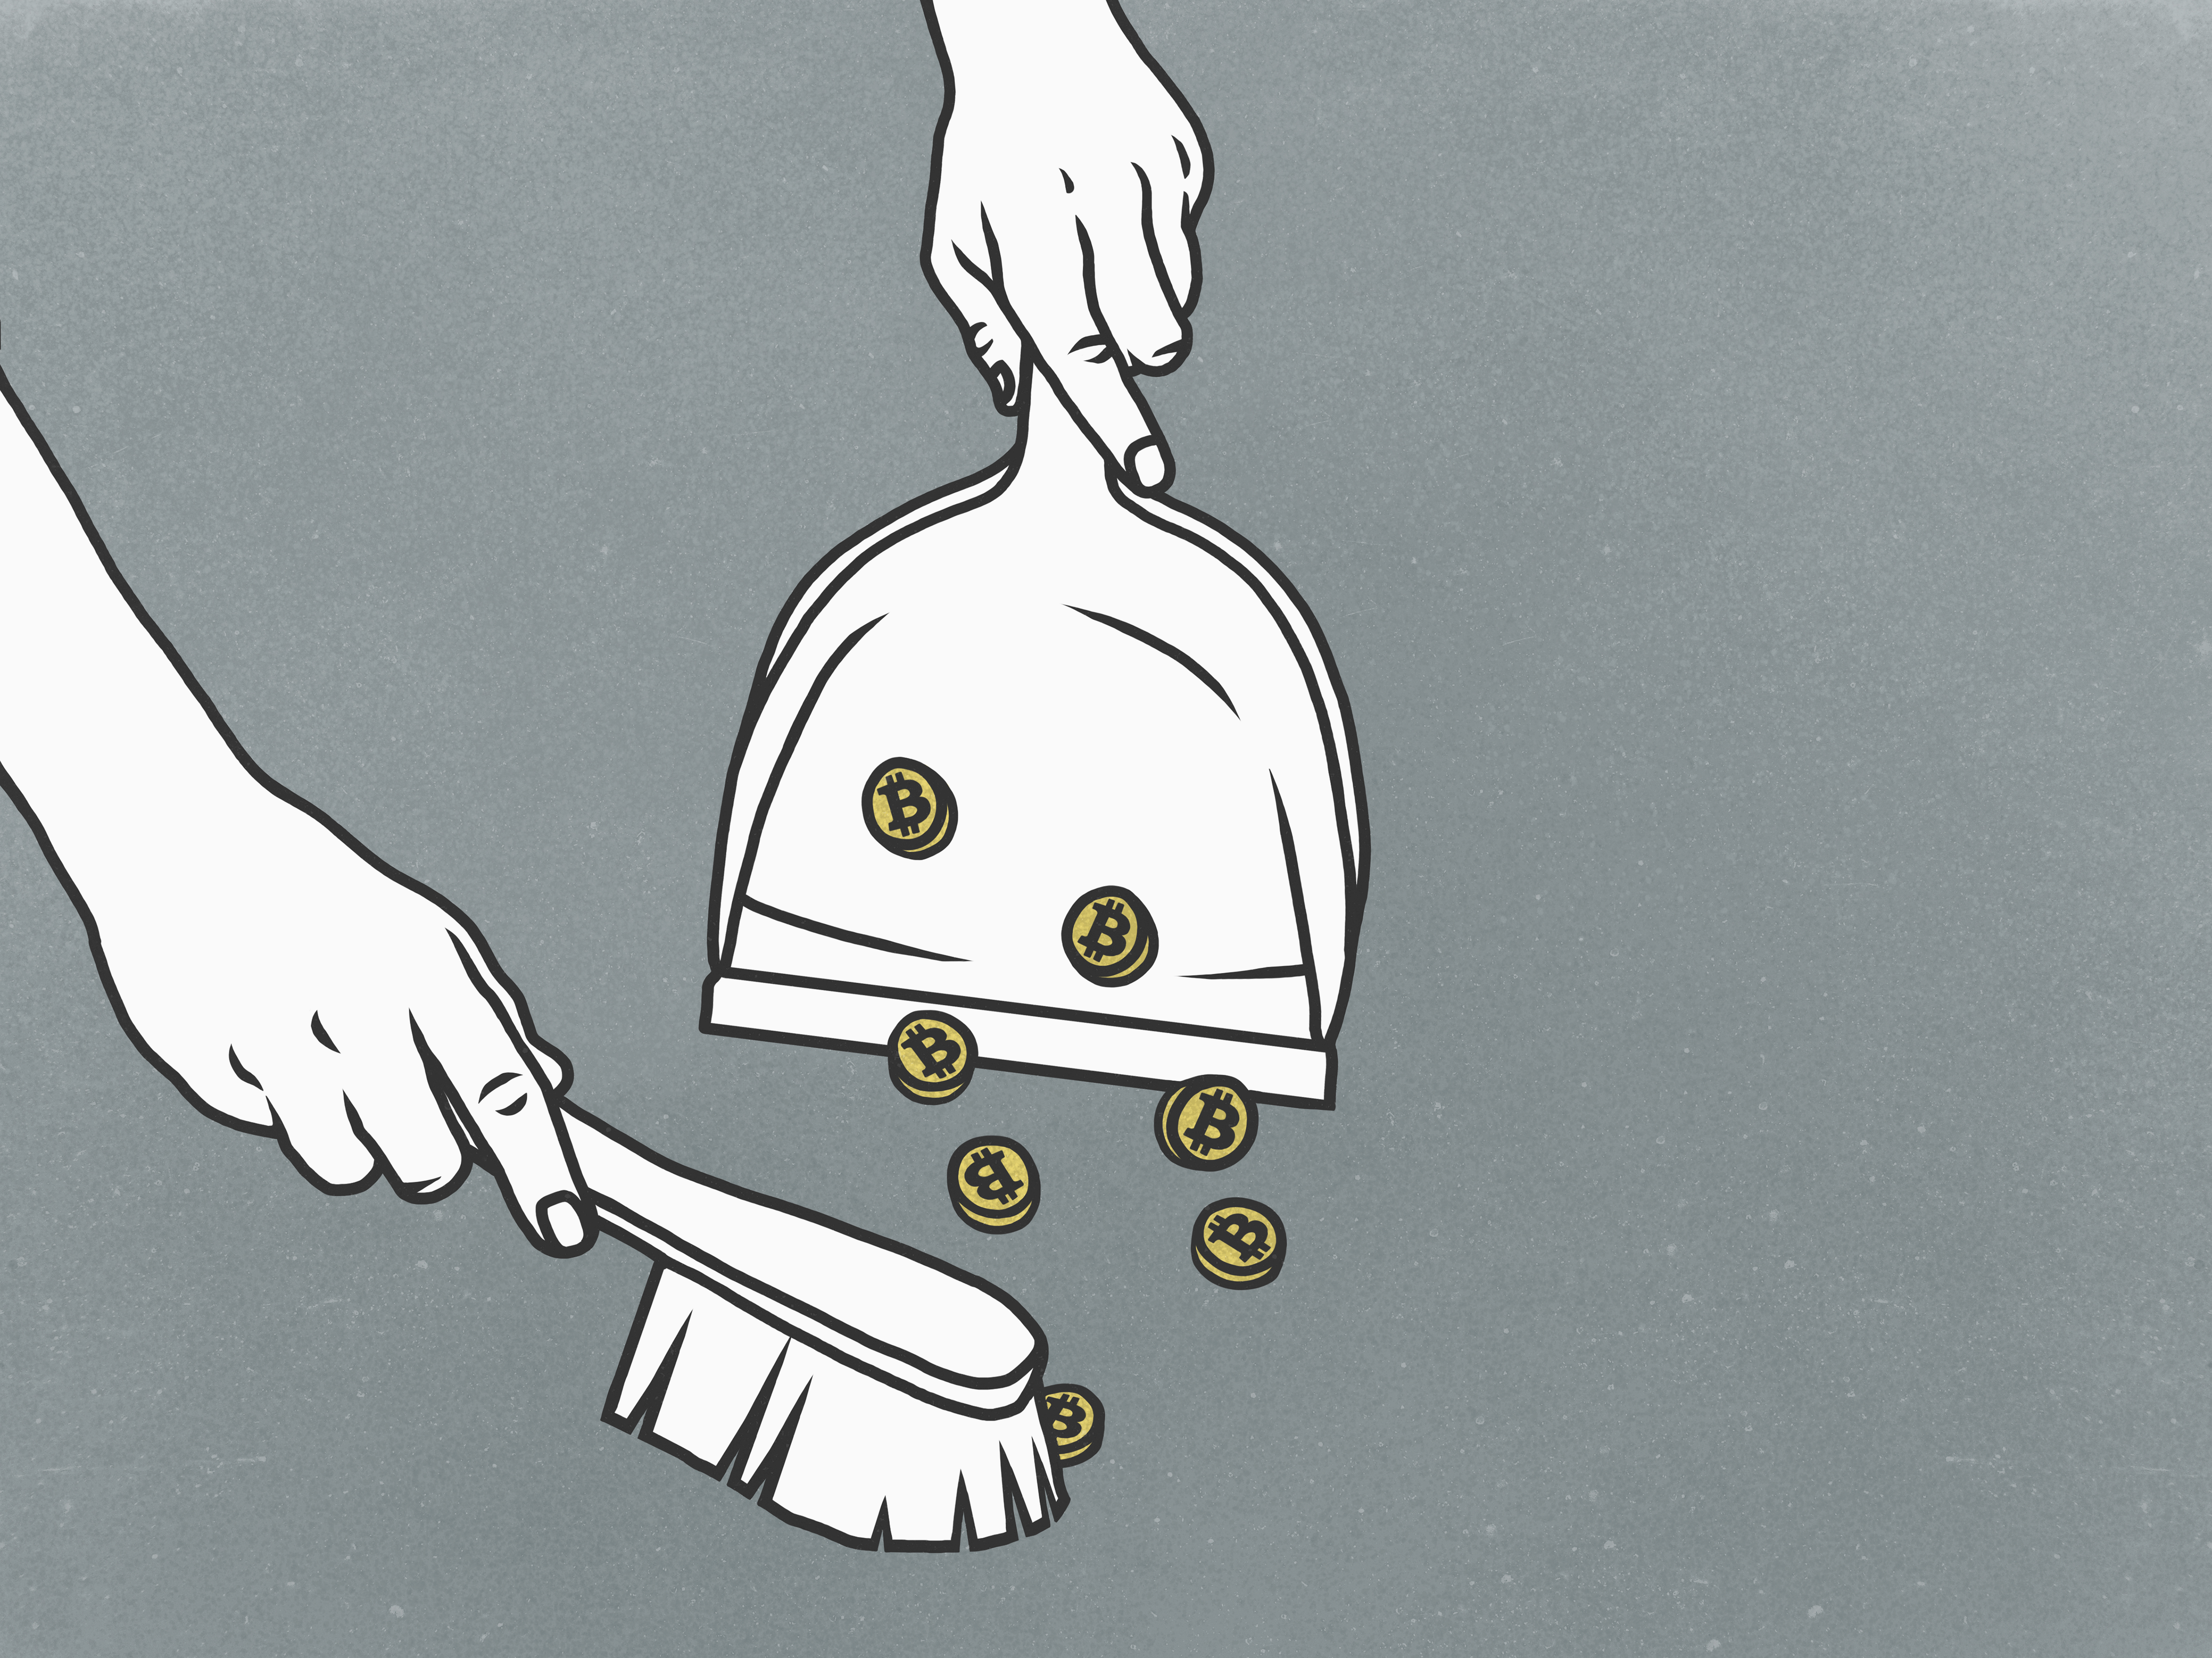 A drawing of two hands, one holding a dustpan while the other sweeps coins labeled with a B for bitcoin into it with a brush.